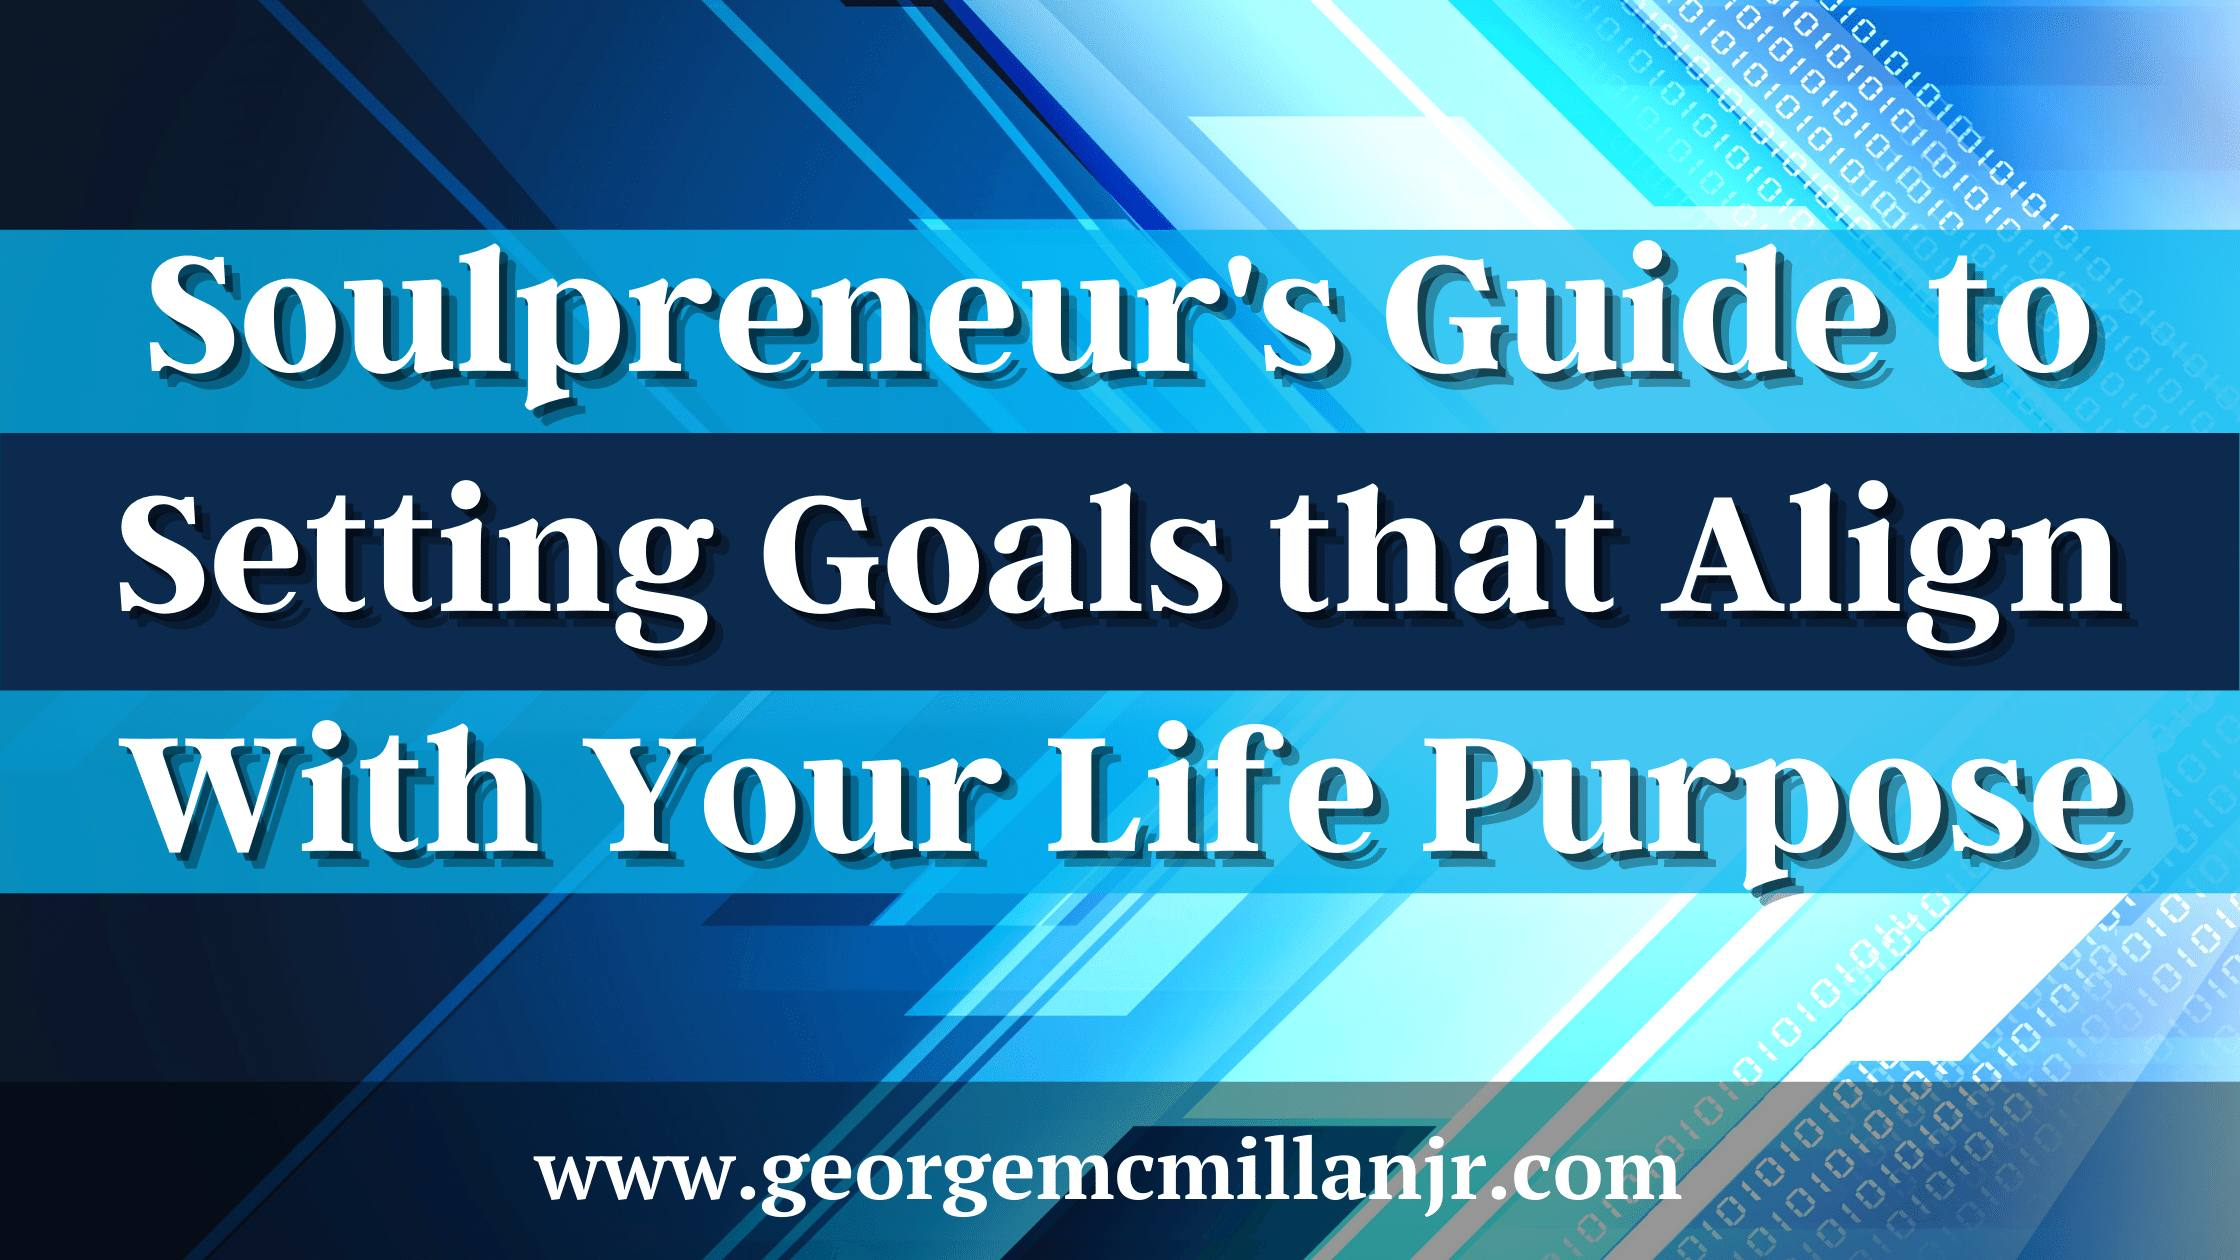 A blue banner for a personal development blog post titled, Soulpreneur's Guide to Setting Goals that Align With Your Life Purpose.